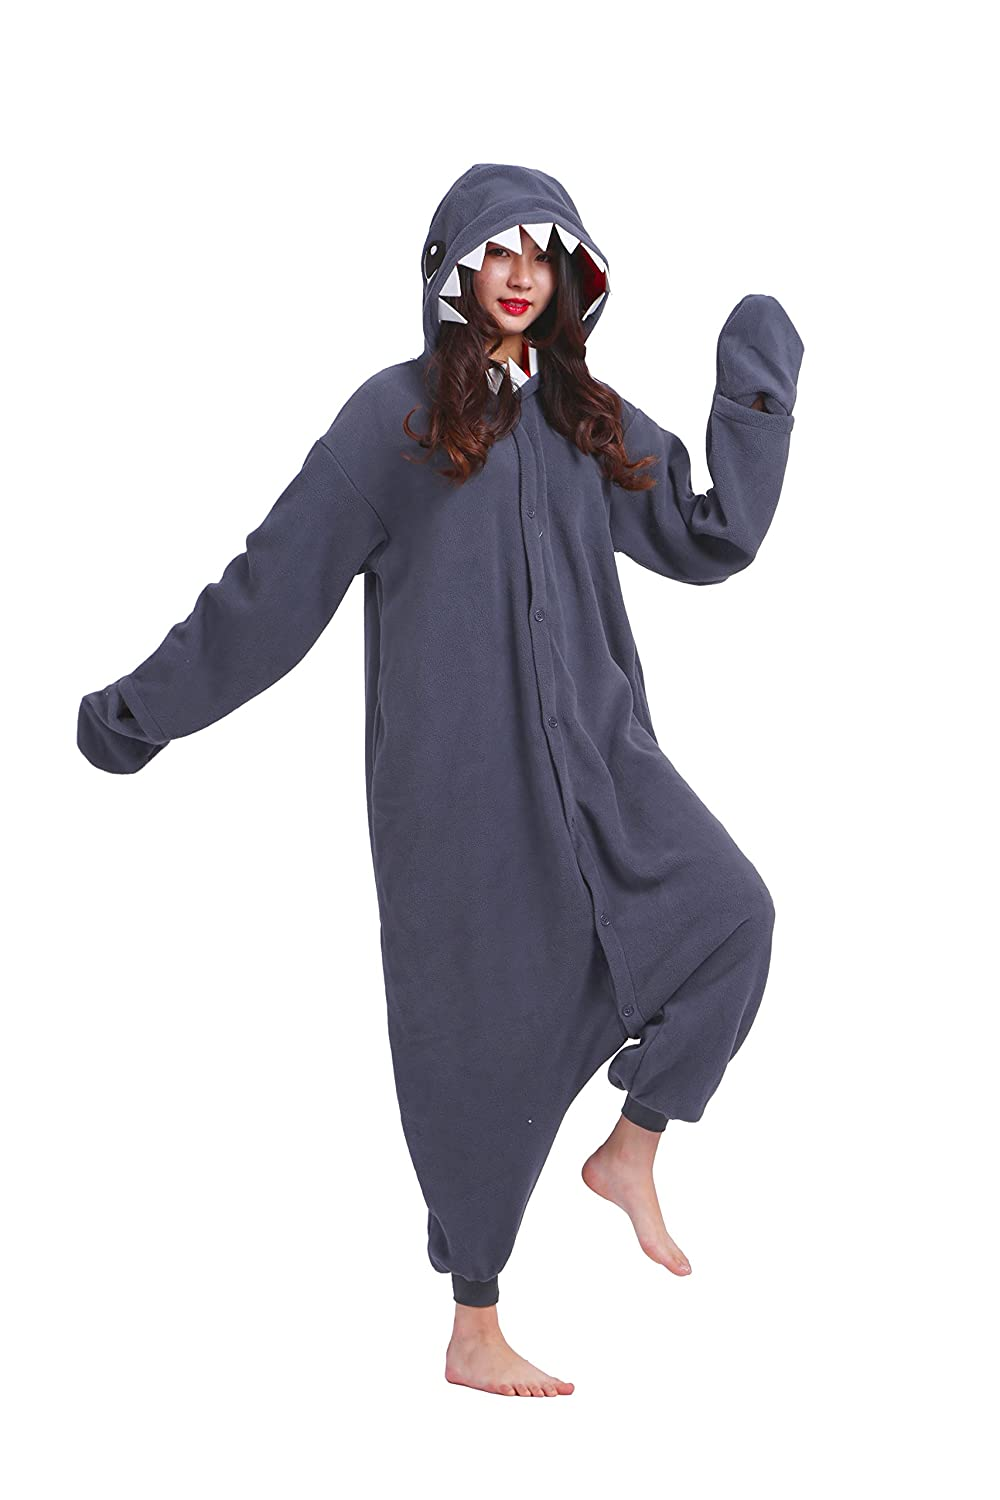 6b35c2903e Magicmode Unisex Animali Cartoon Kigurumi Pigiama Adulti Onesie Anime  Cosplay Felpa Pigiameria Squalo Nero S: Amazon.it: Abbigliamento